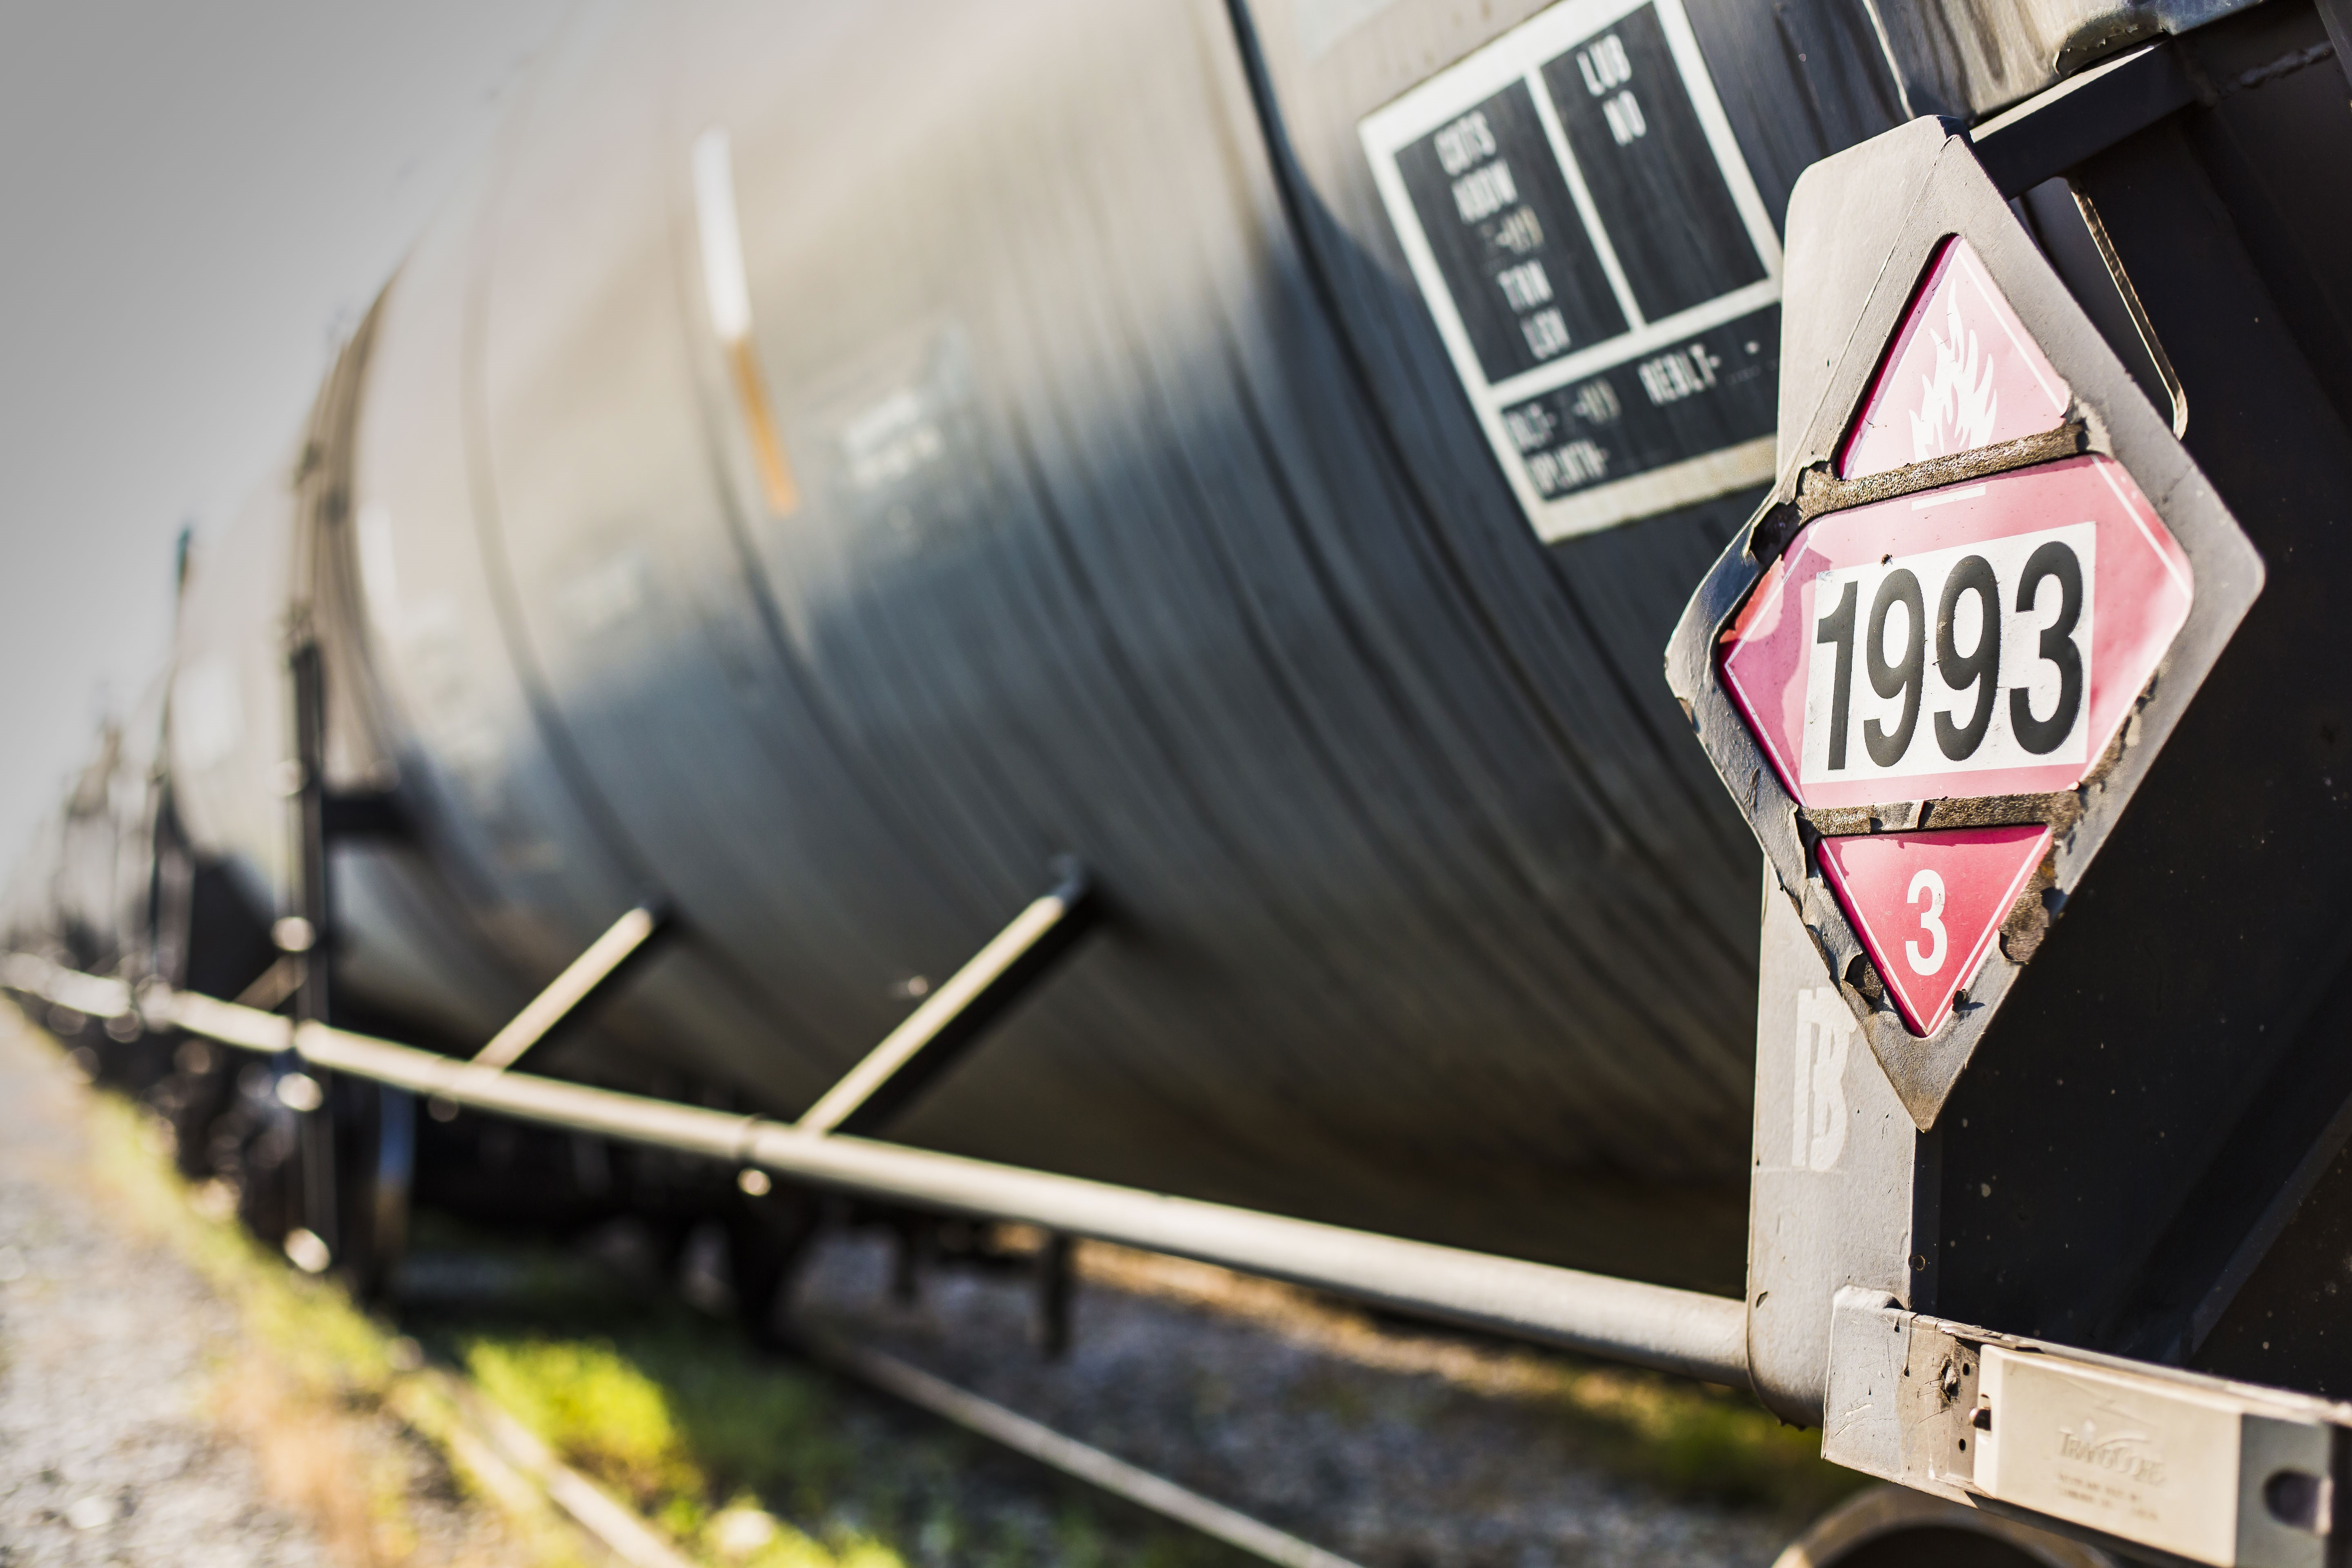 Railroad tanker with placard